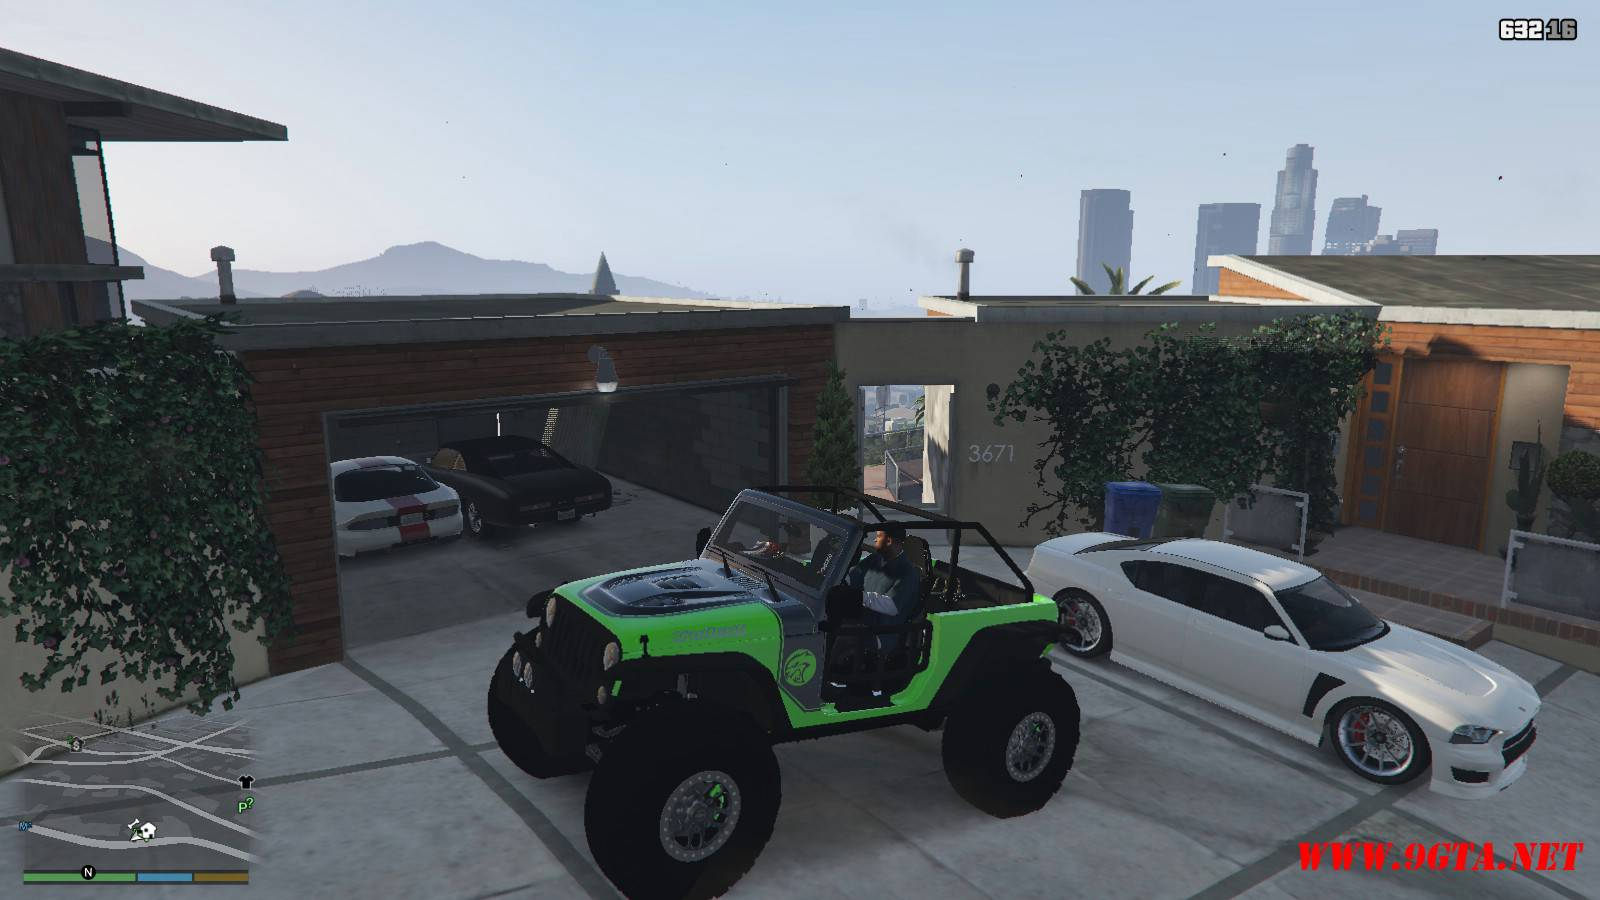 Jeep Trailcat Concept v2 Mod For GTA5 (1)